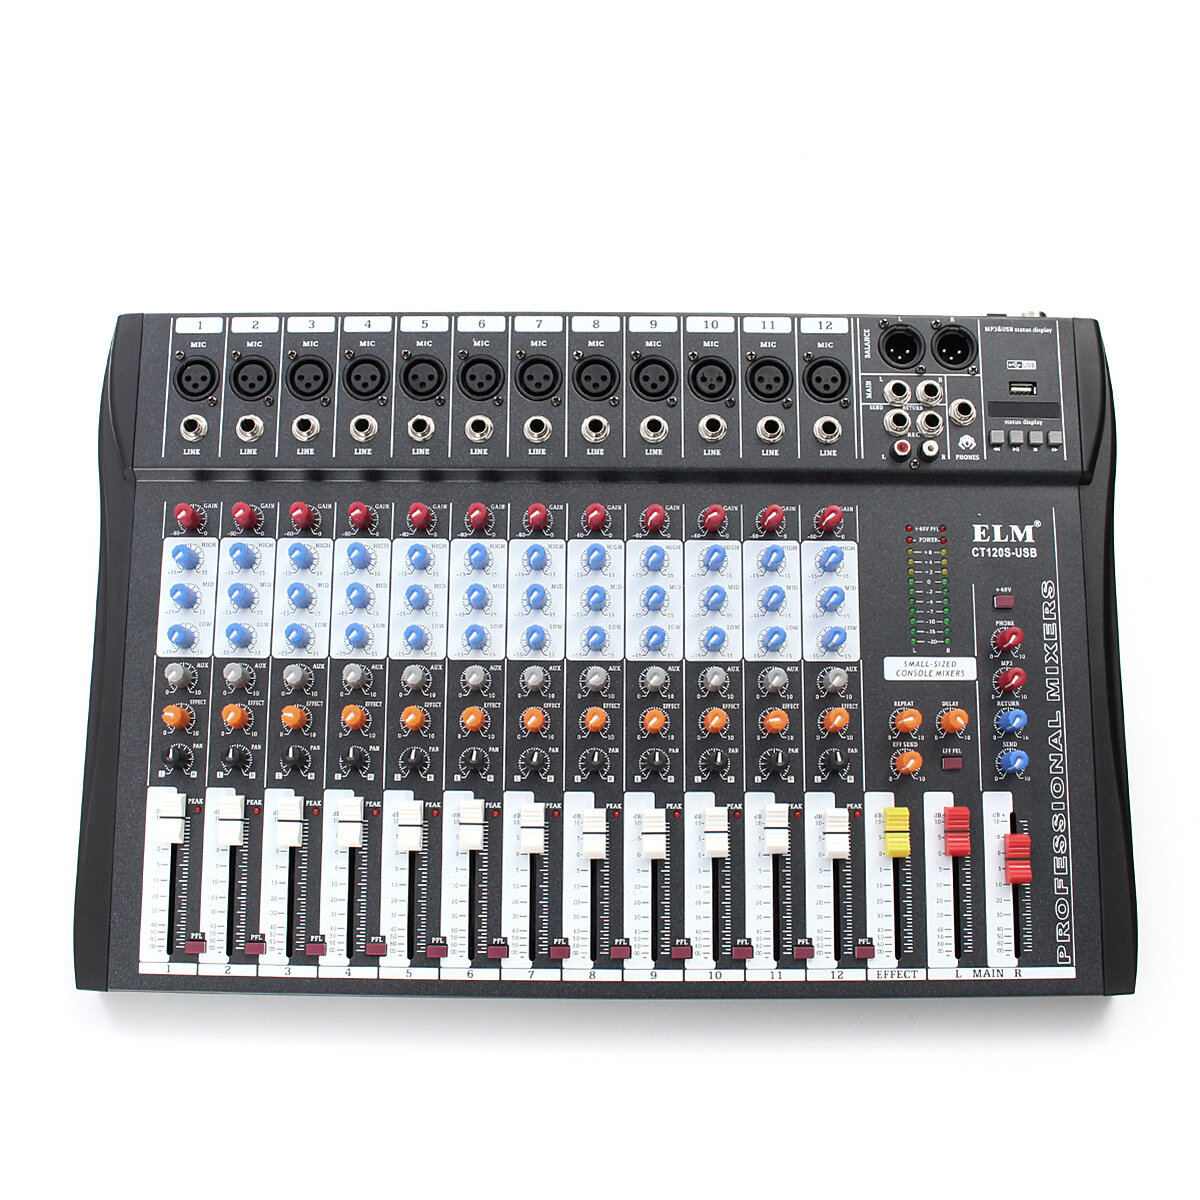 hight resolution of el m ct 120s 12 channel professional live studio audio mixer power usb mixing console cod